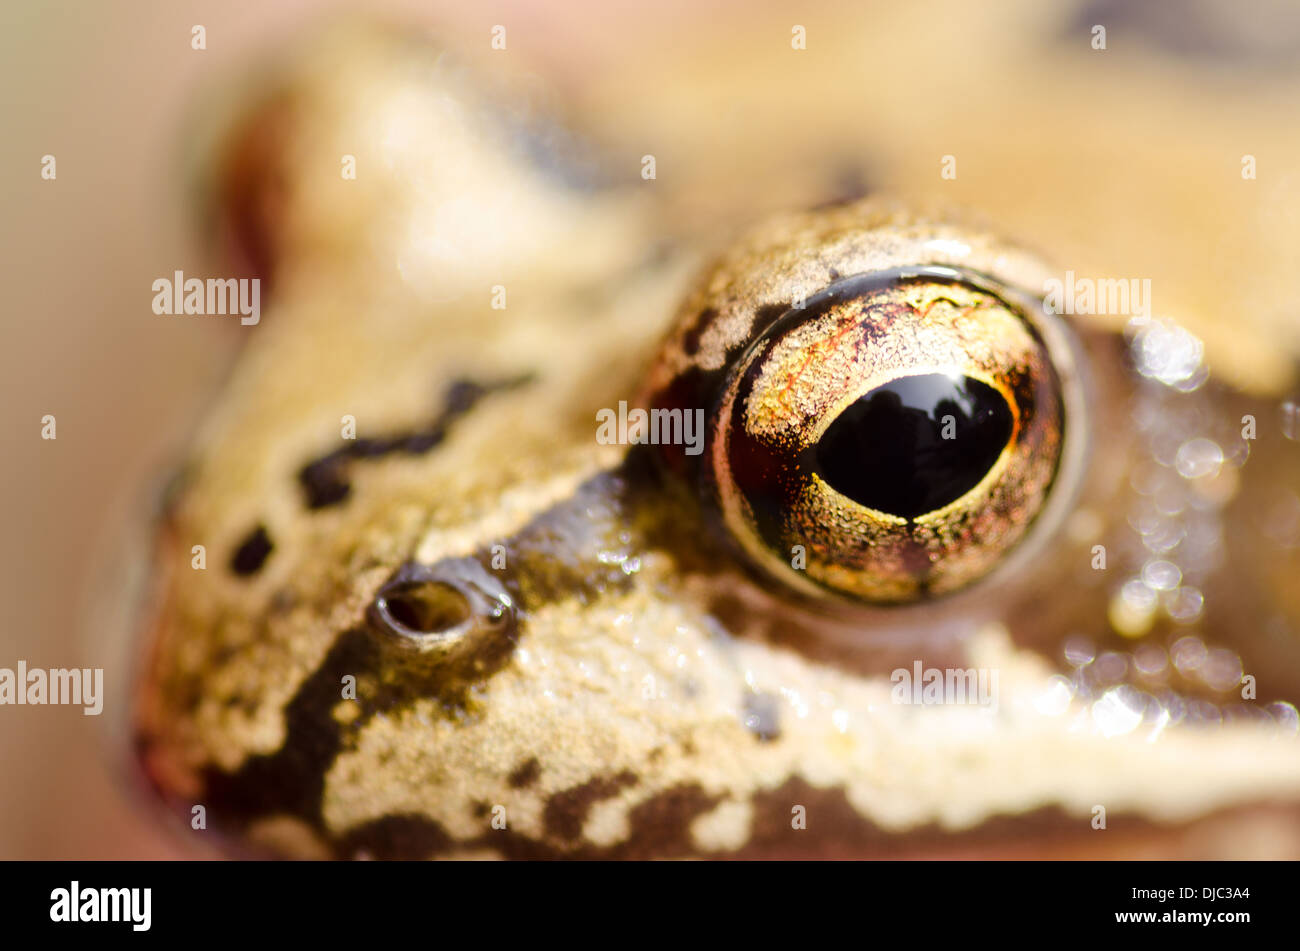 Rana temporaria head with focus on the eye, common frog - Stock Image